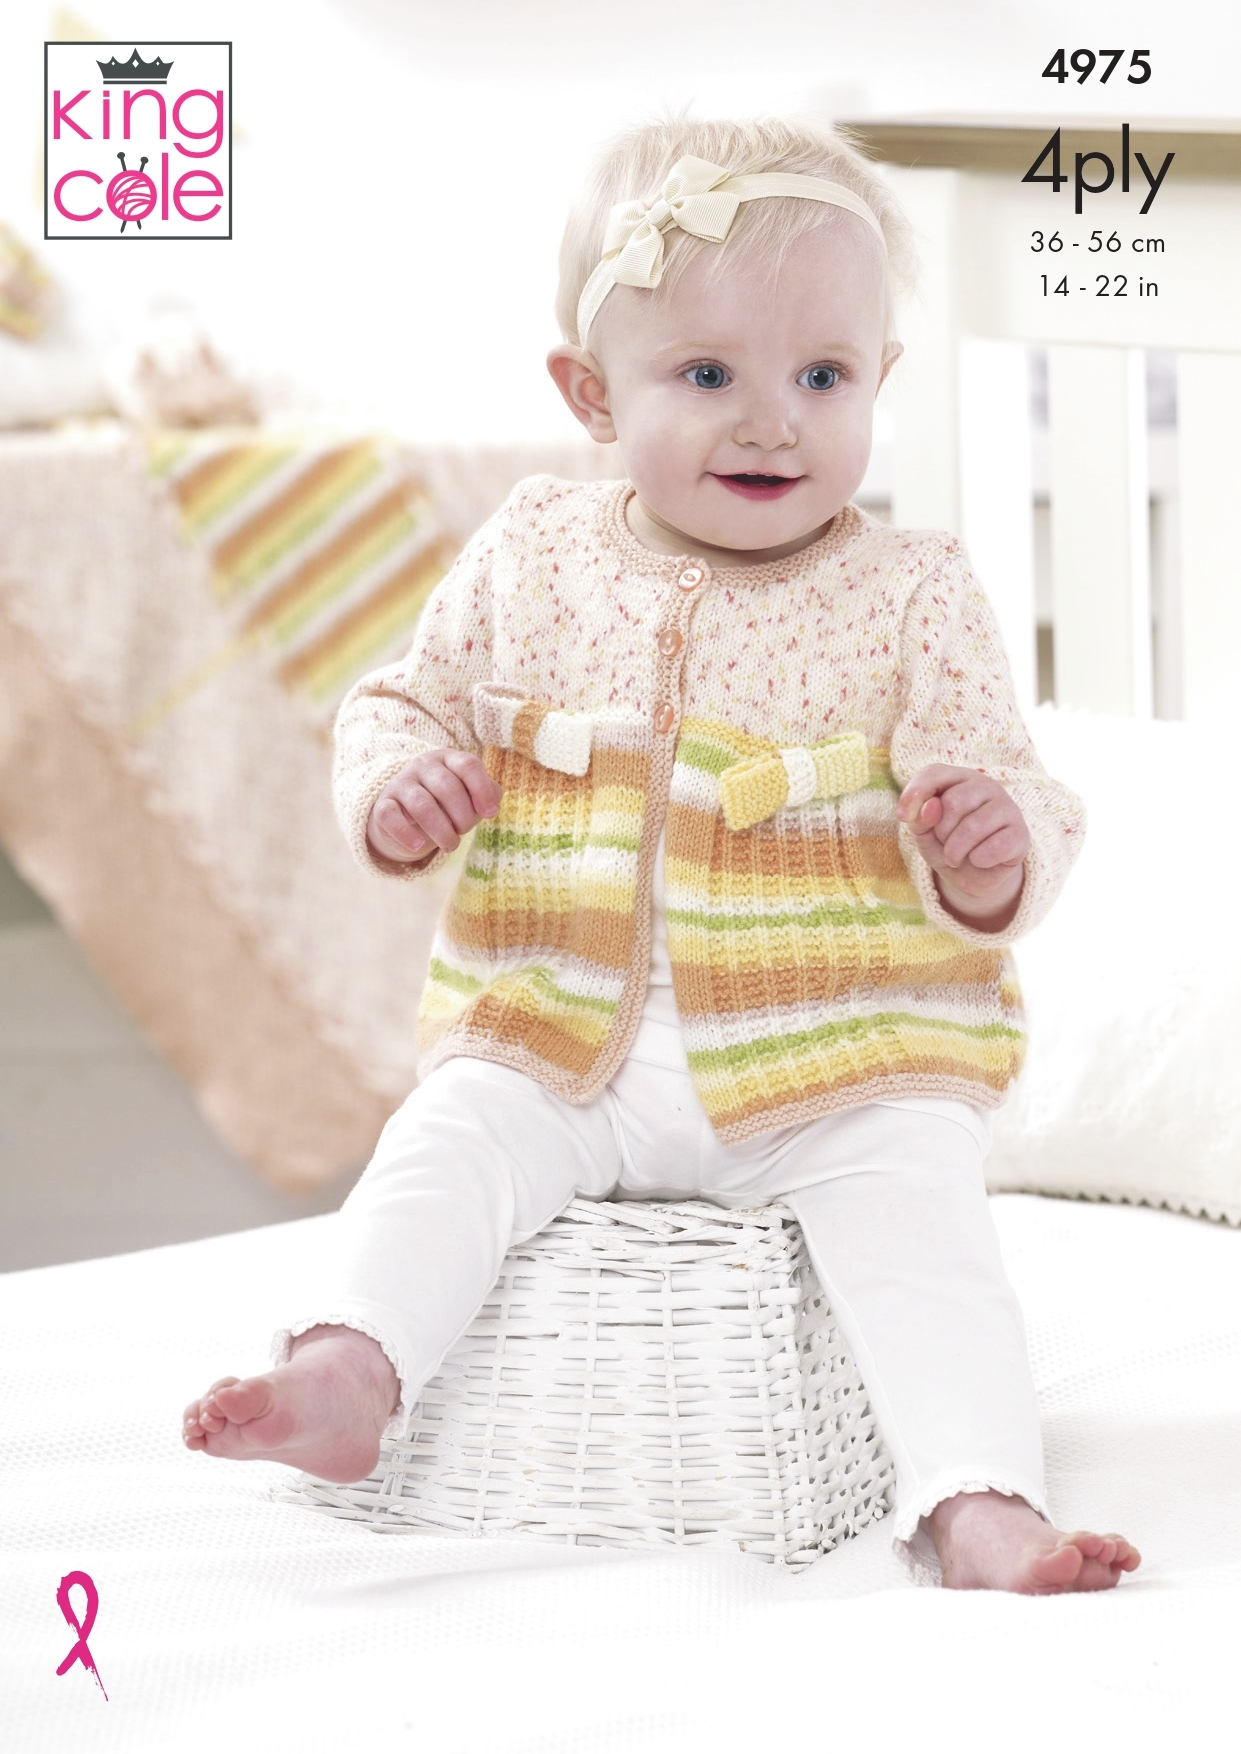 Jackets /& Blanket 4647 0 to 7 years King Cole Knitting Pattern